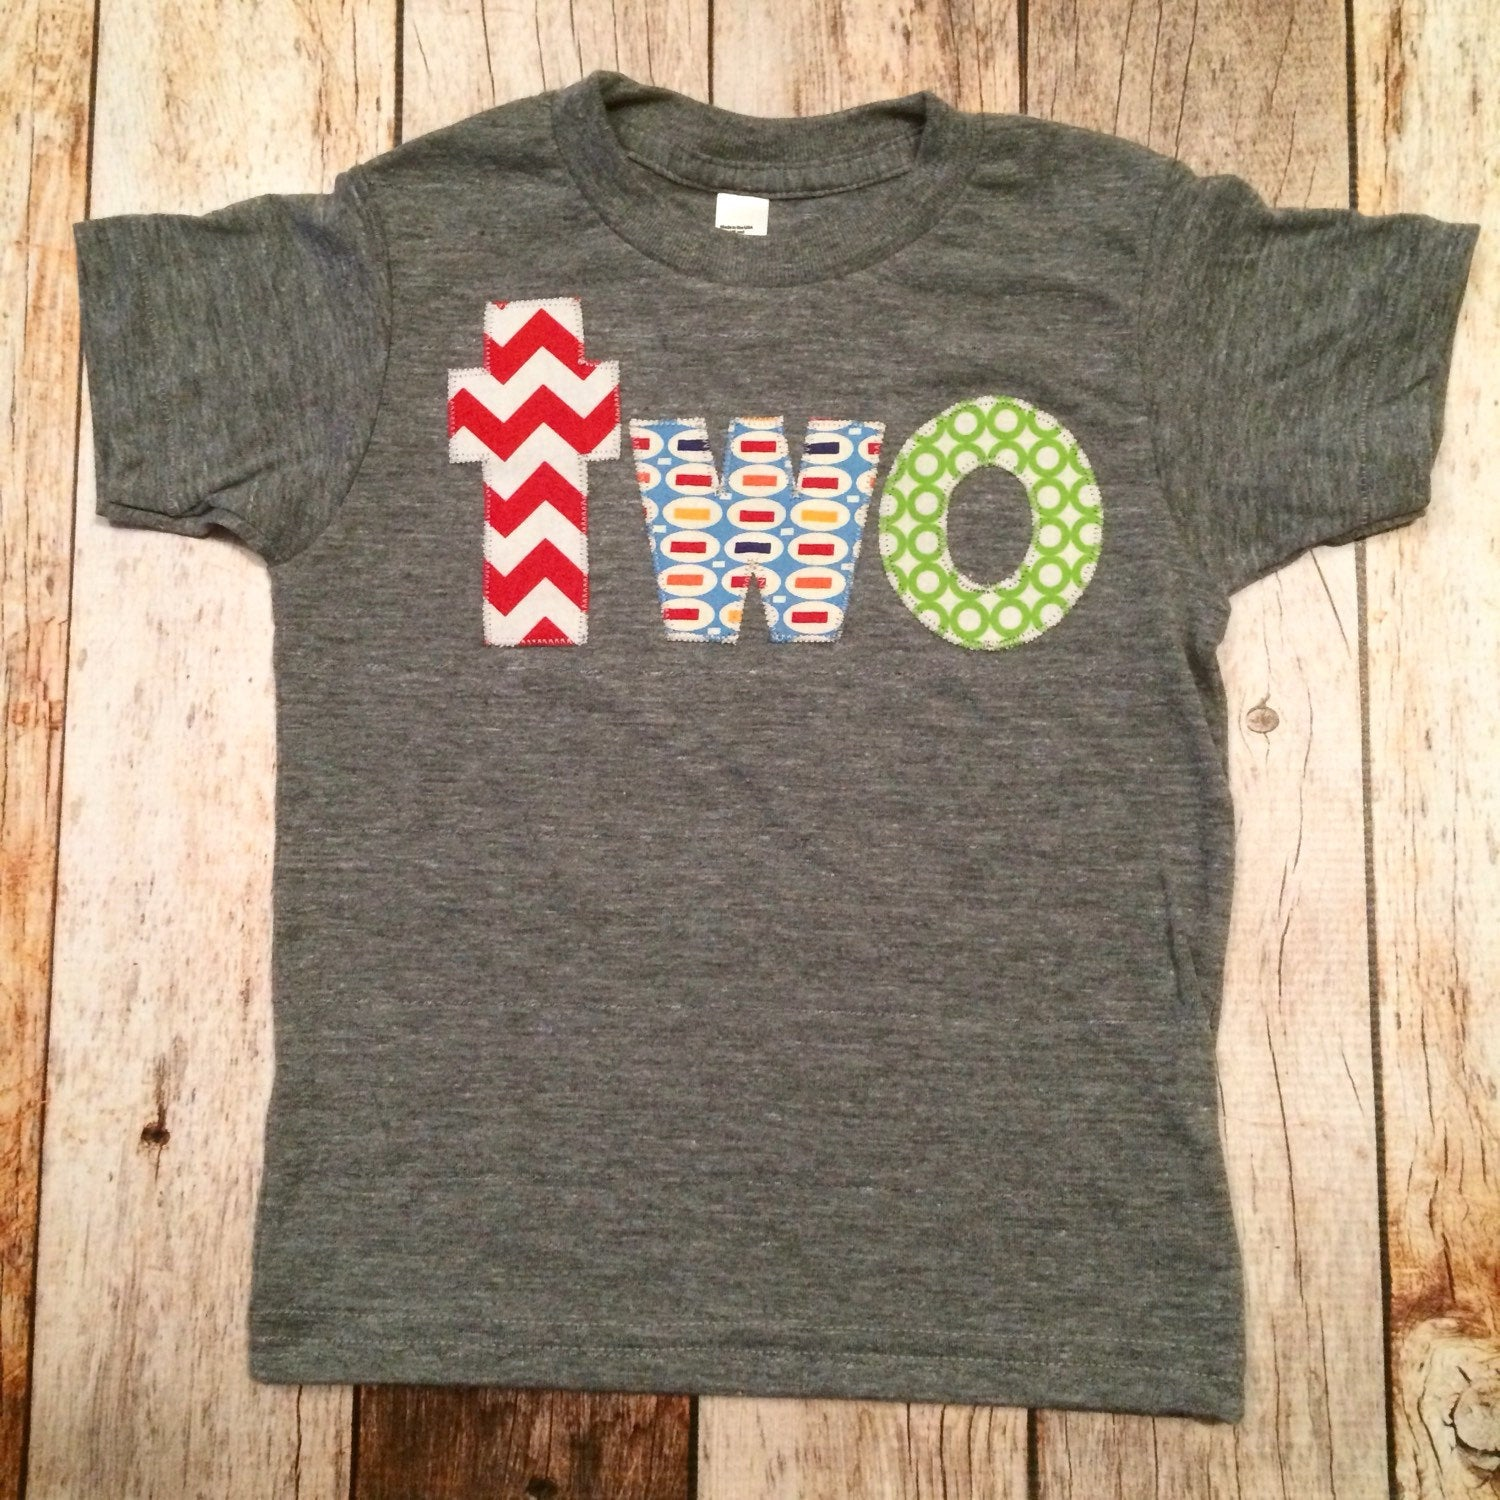 Fan Photo Birthday Shirt for 2 year old 2nd Birthday lowercase two with red chevron, pez and green circles